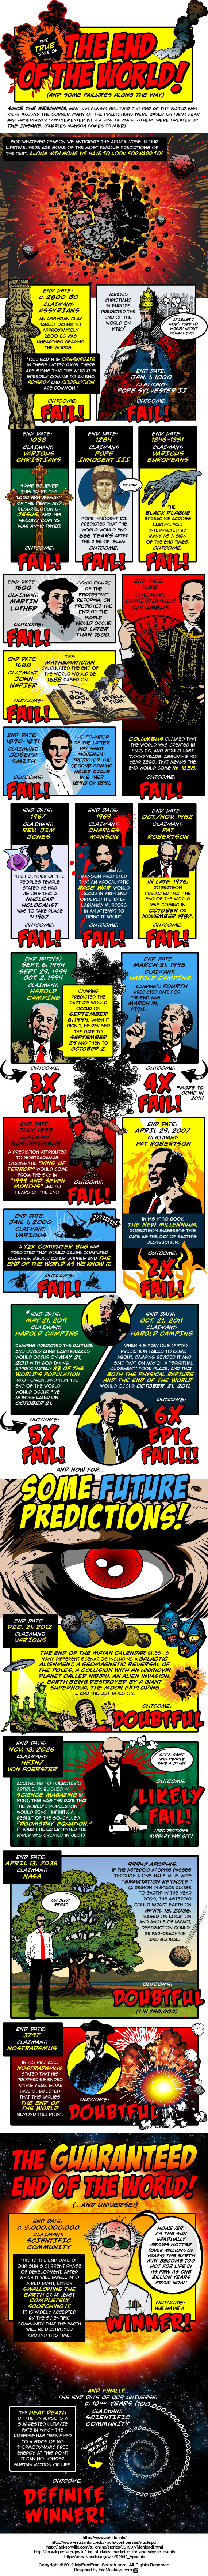 The Epic Failed Predictions For The End Of The World [Infographic]